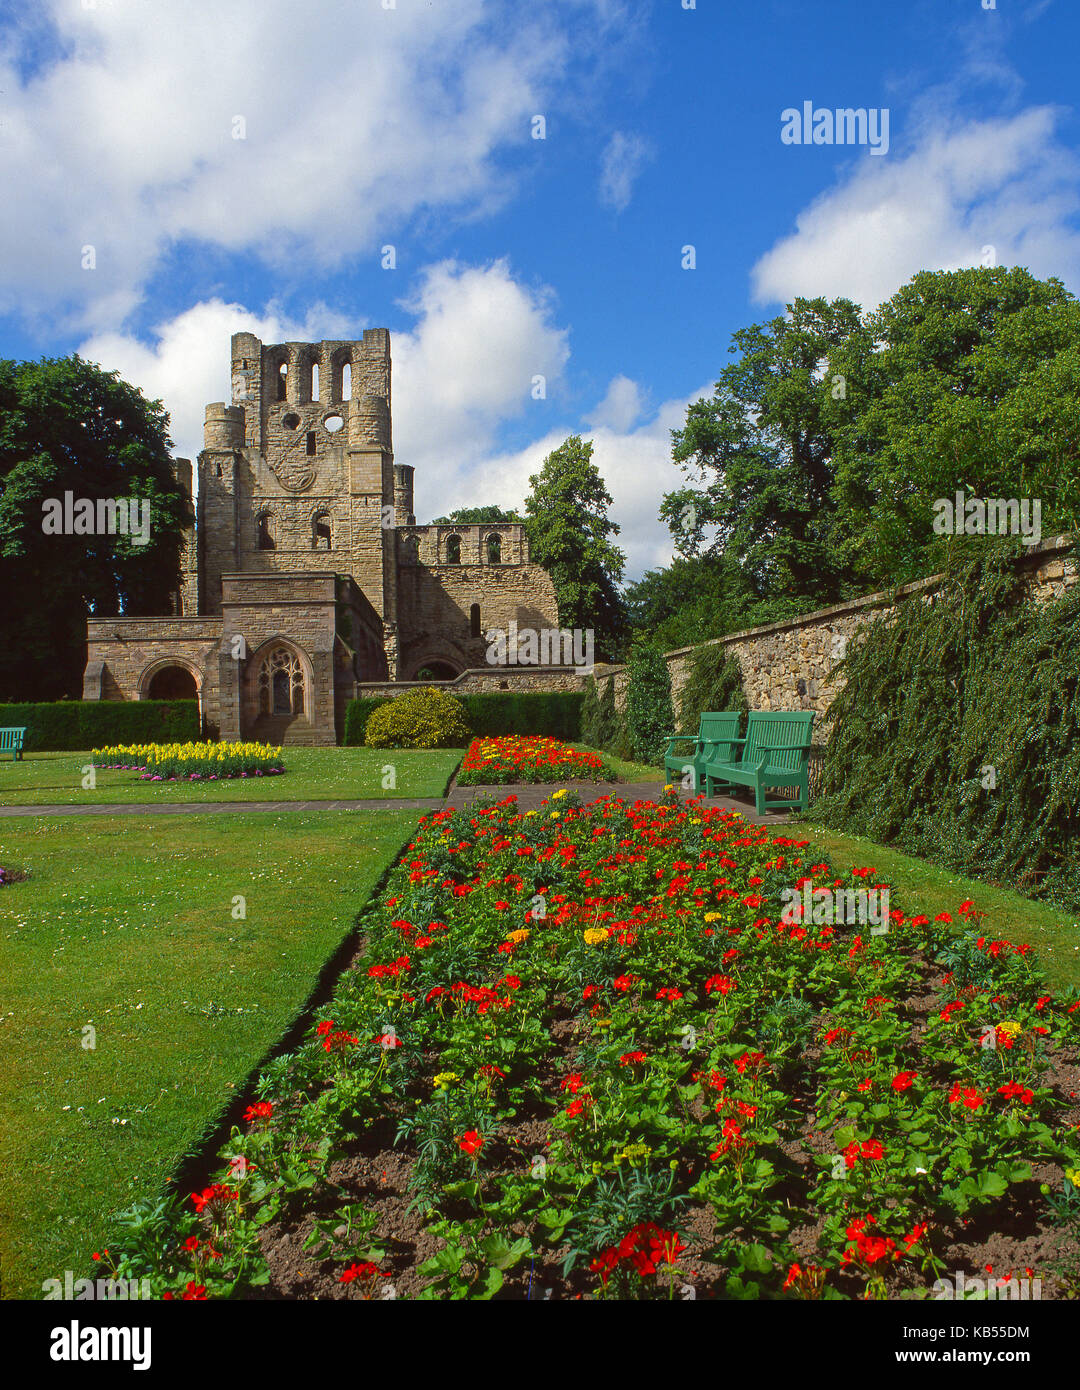 The ruins of Kelso Abbey viewed from the Abbey garden, Kelso, Roxburghshire